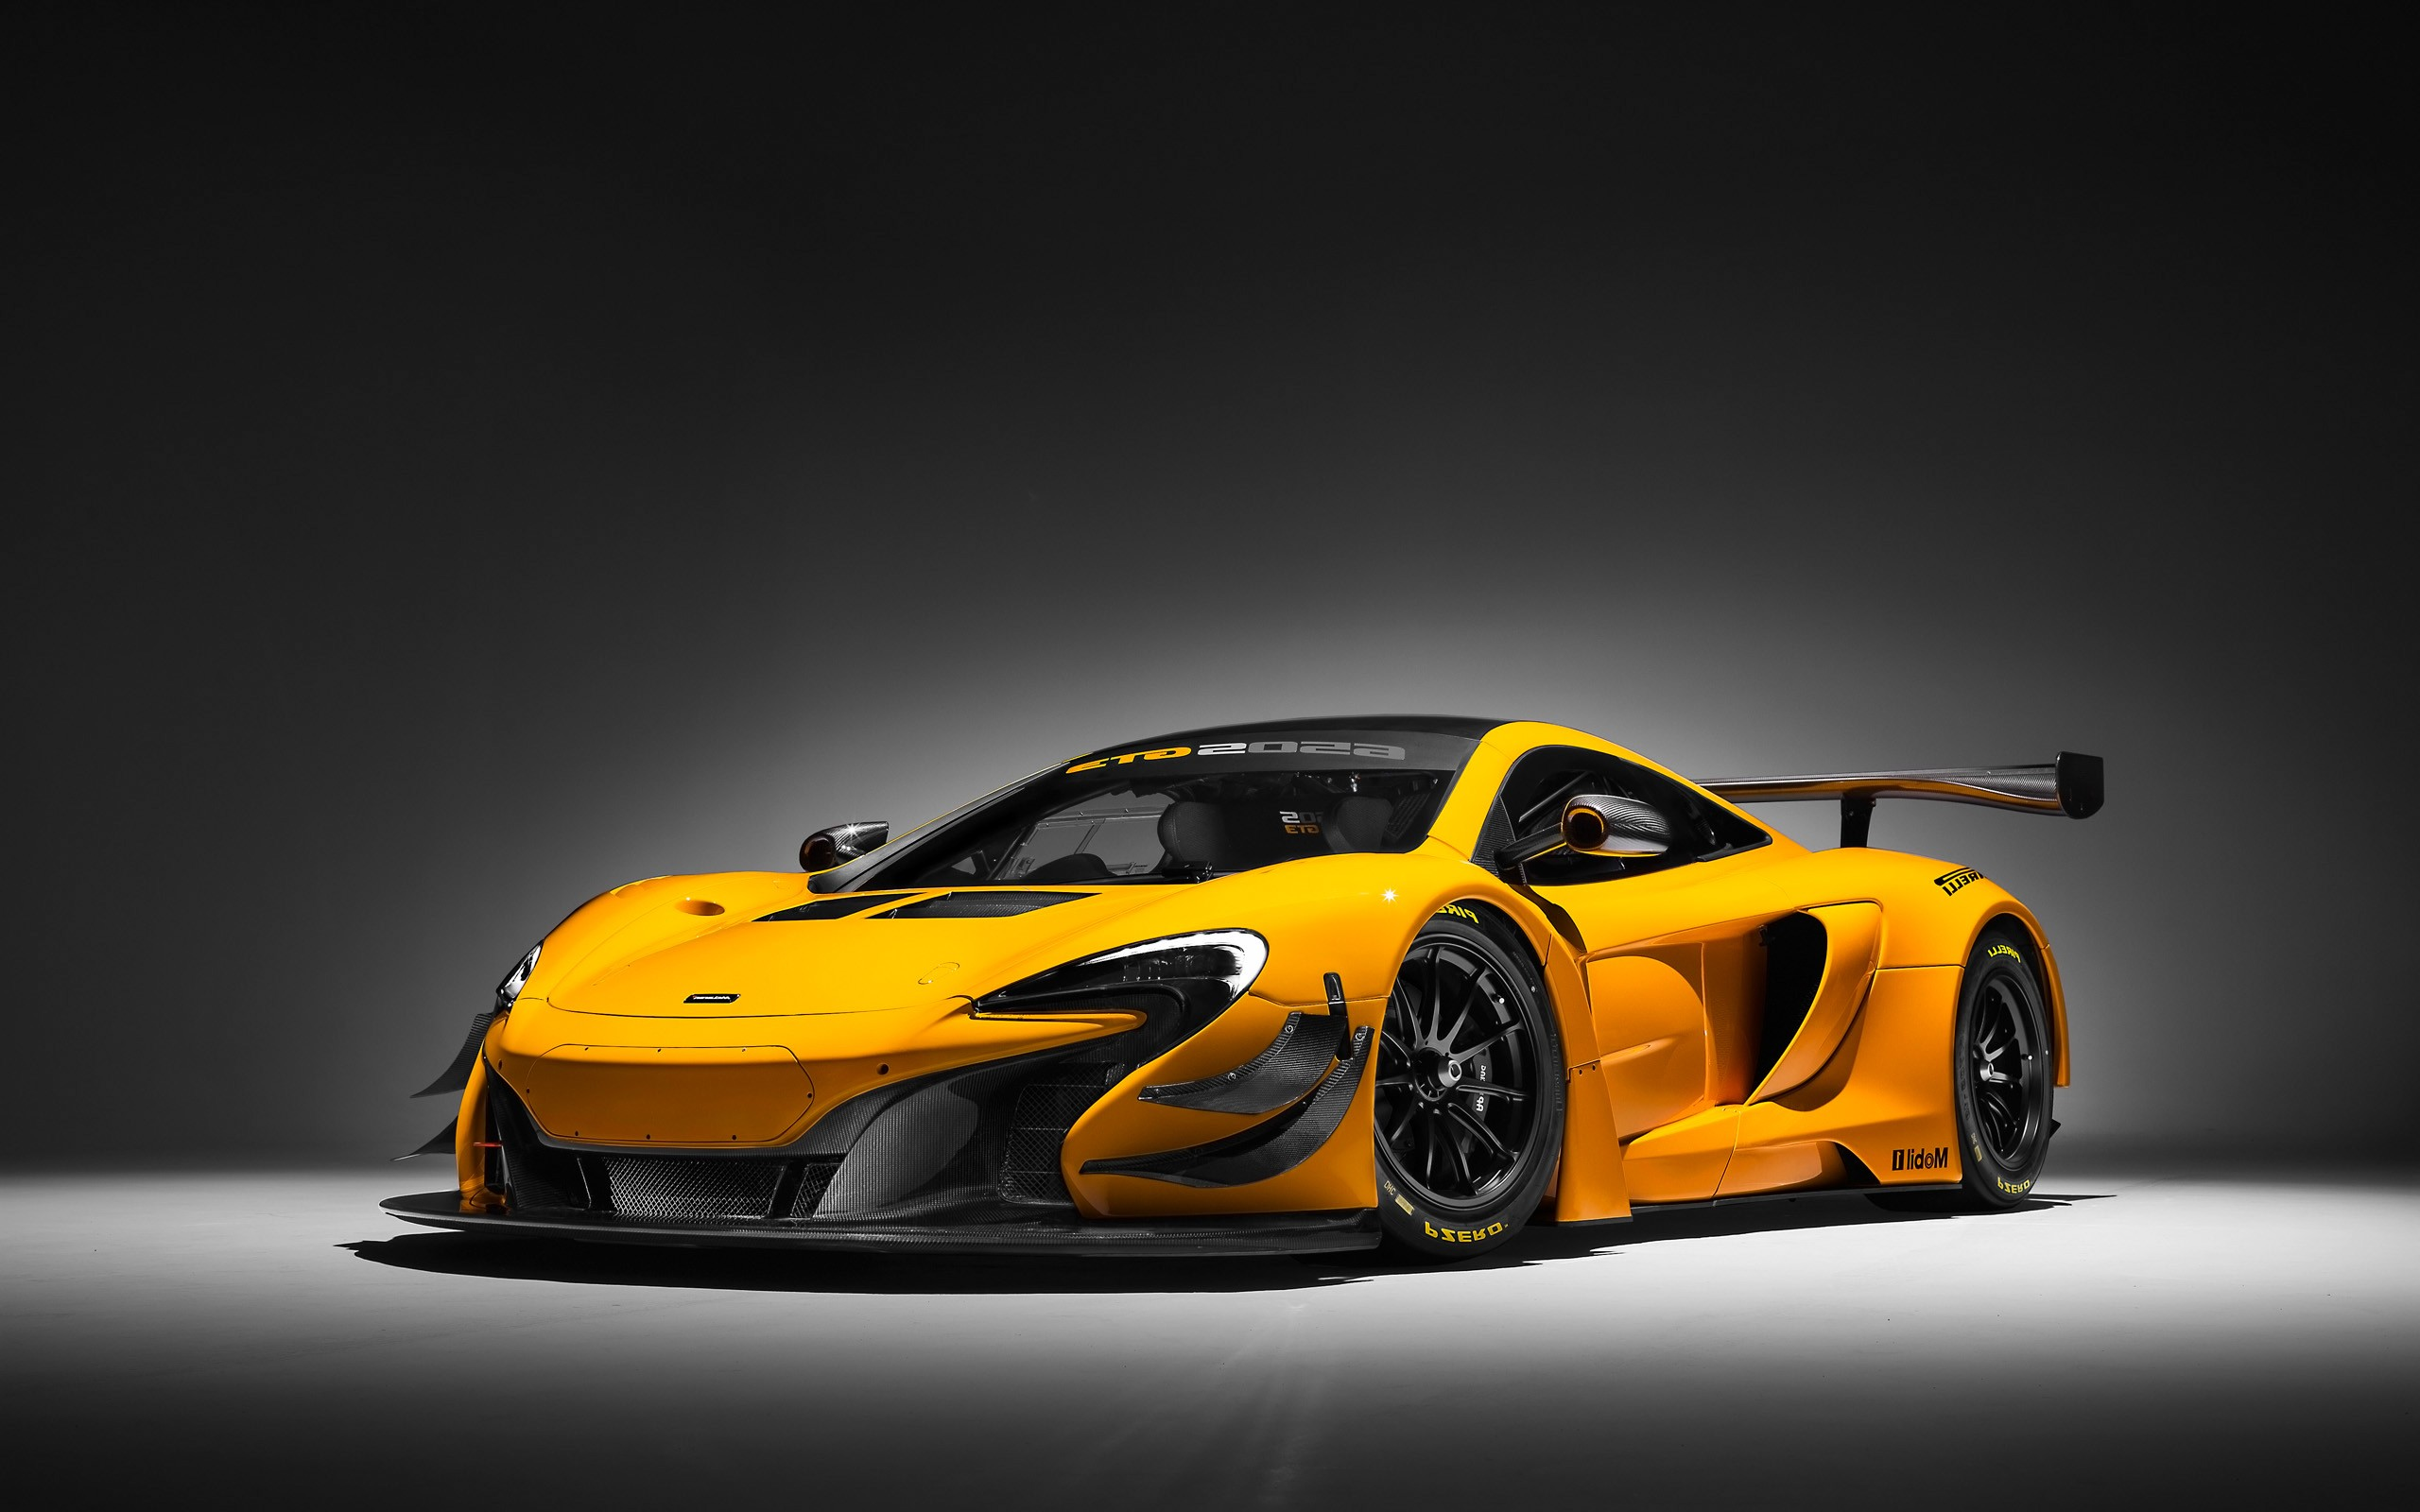 Mclaren 650s 2016, HD Cars, 4k Wallpapers, Images, Backgrounds, Photos And Pictures